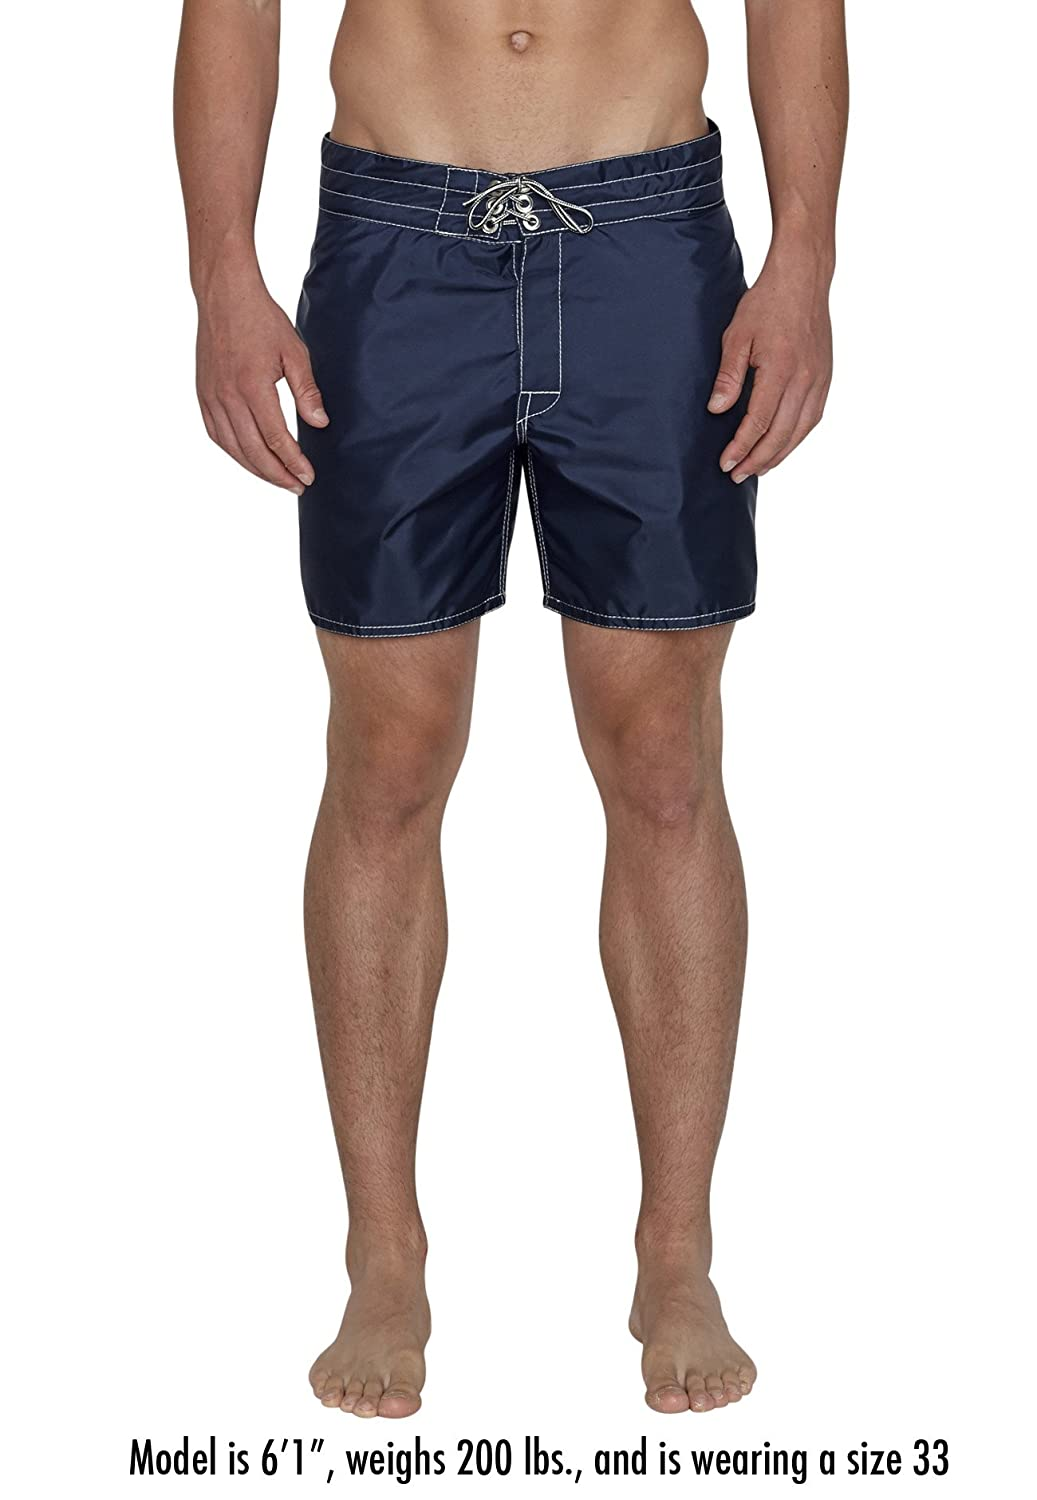 ee1b334eff Birdwell Men's Board Shorts - Short Length | Amazon.com